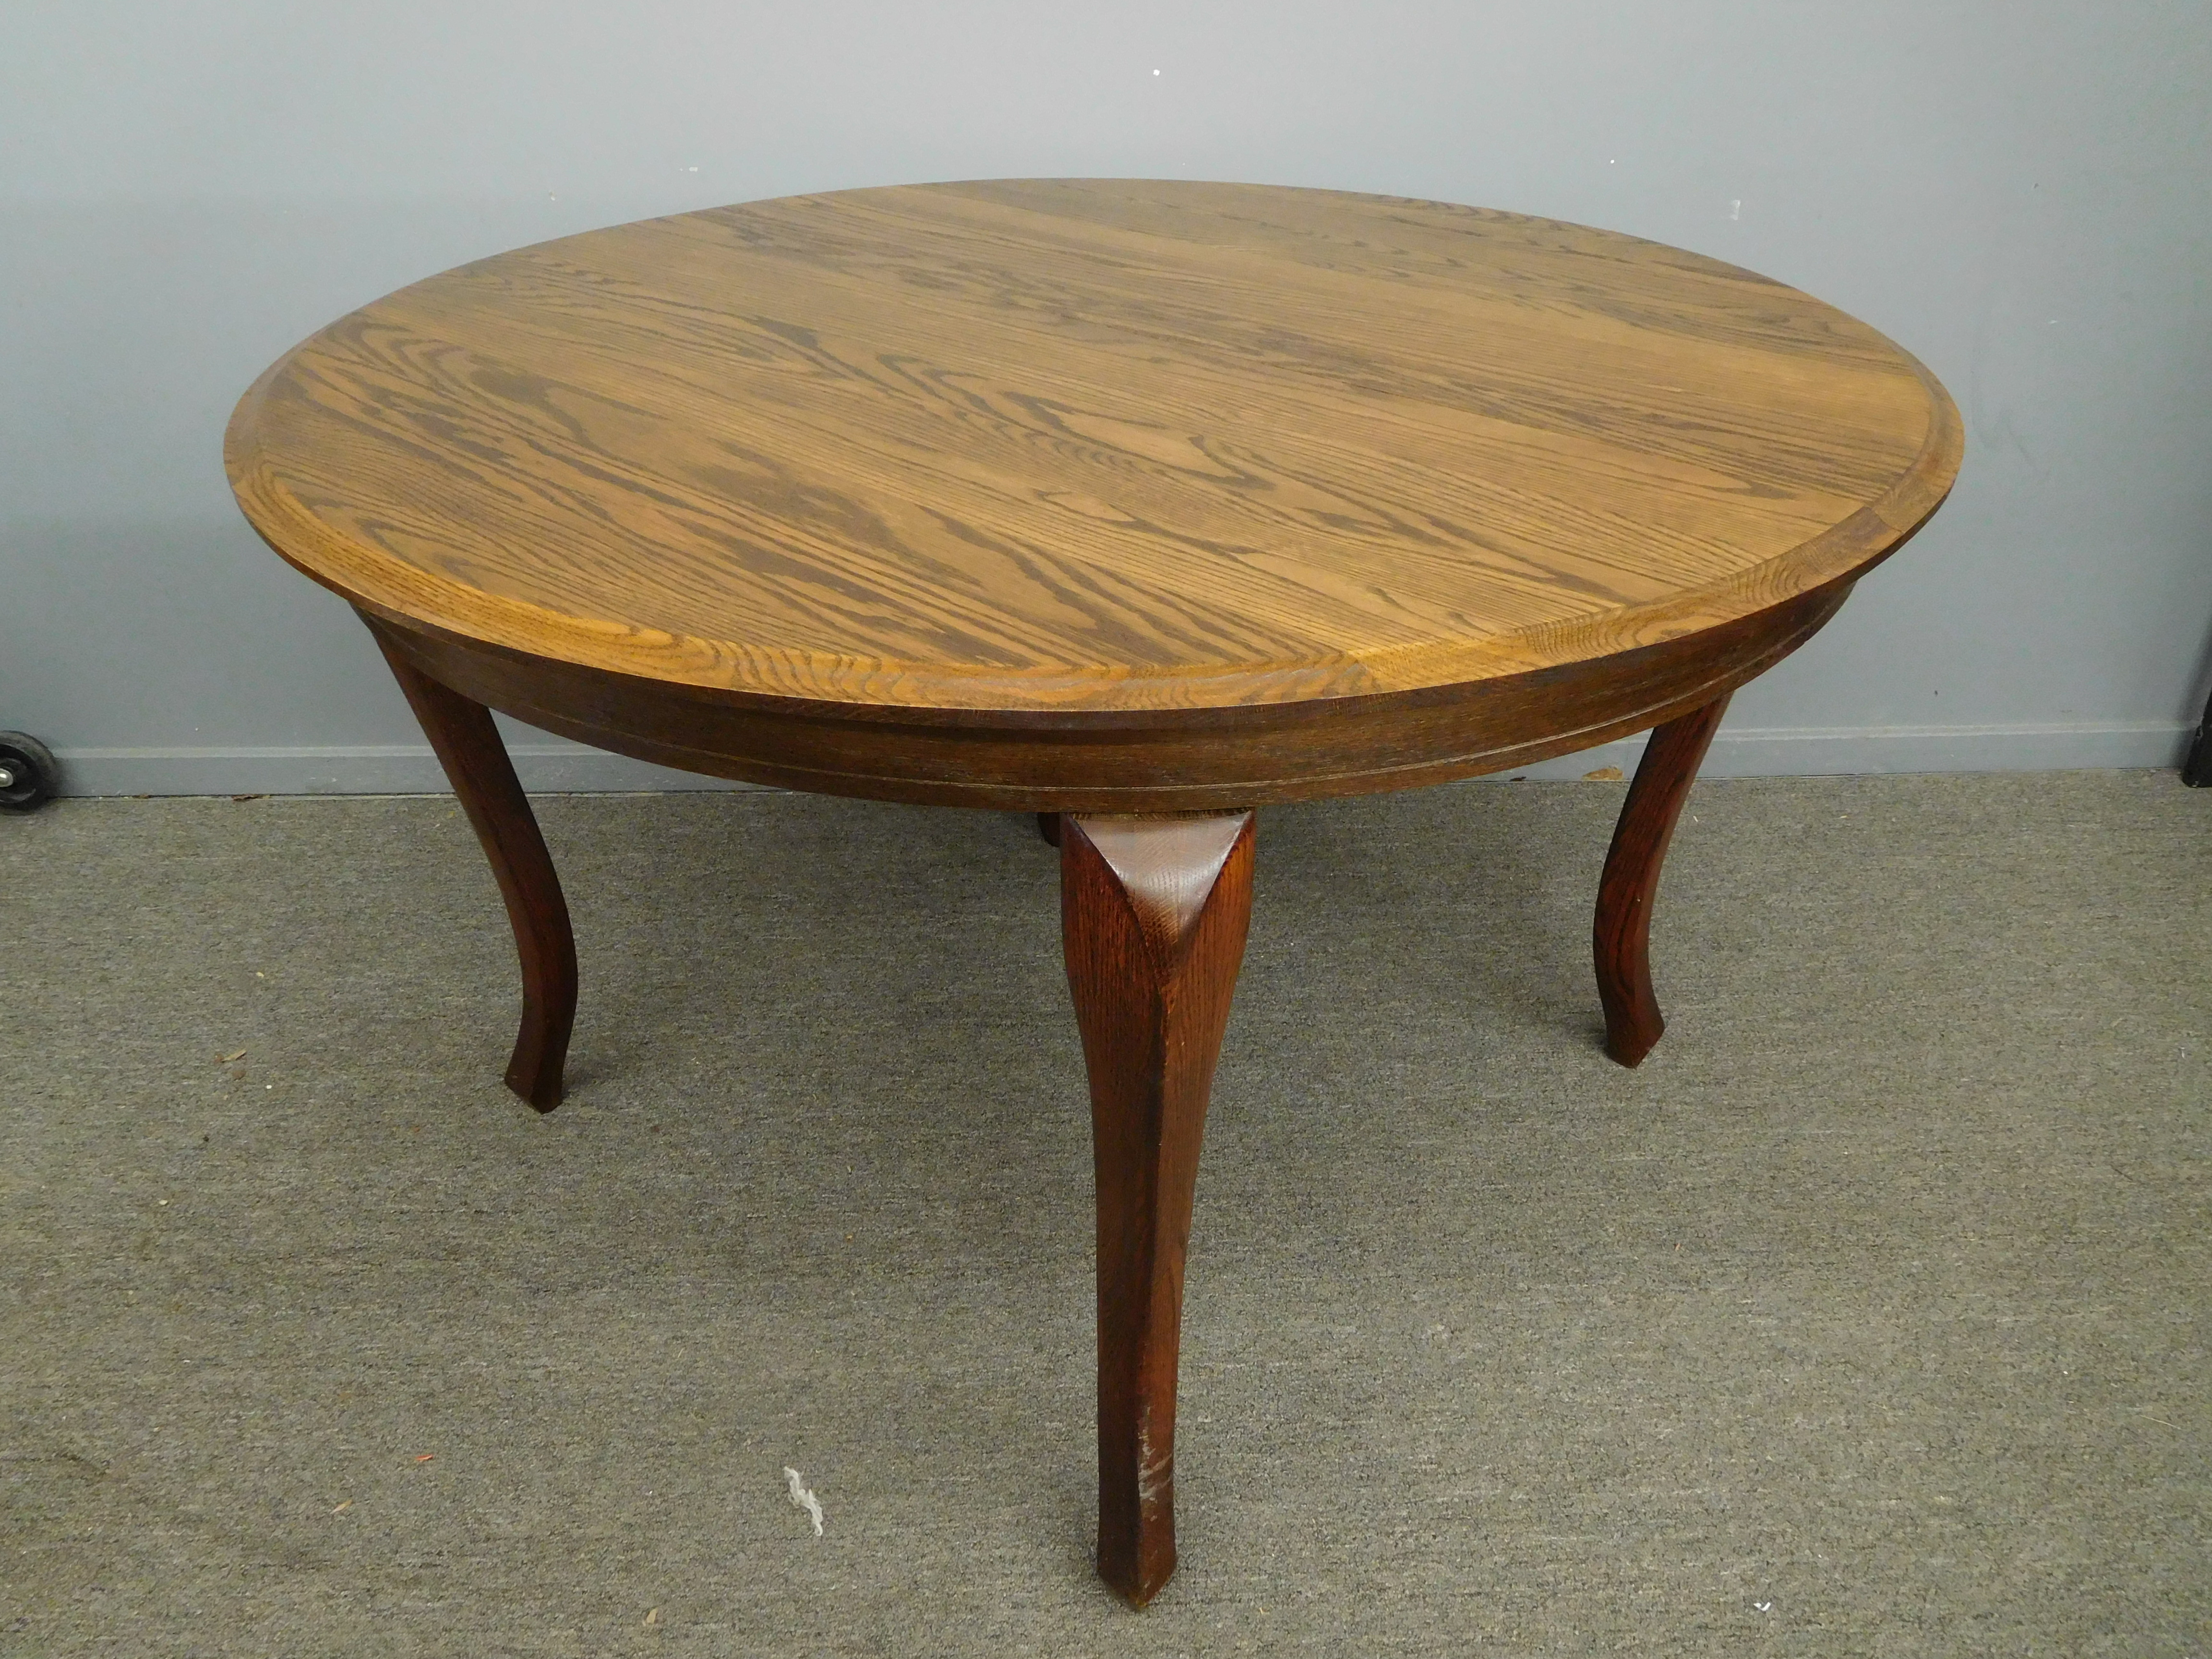 Round Solid Oak Dining Table With 1 Leaf